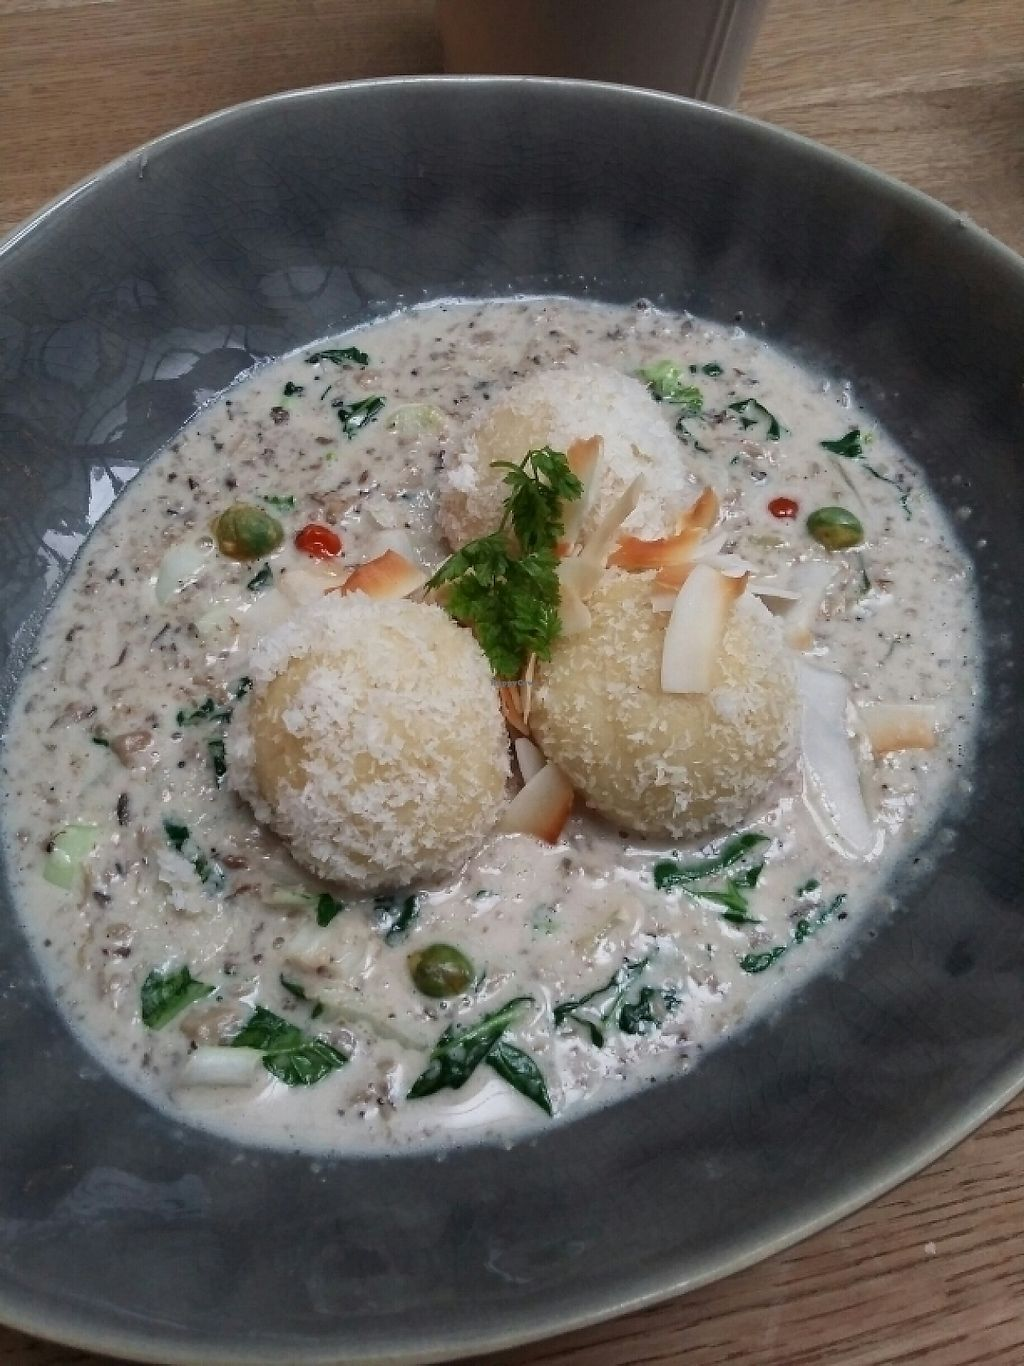 """Photo of TIAN Bistro am Spittelberg  by <a href=""""/members/profile/RenataRusnak"""">RenataRusnak</a> <br/>white polenta, coconut, shitake. almost dessert <br/> May 5, 2017  - <a href='/contact/abuse/image/63223/255909'>Report</a>"""